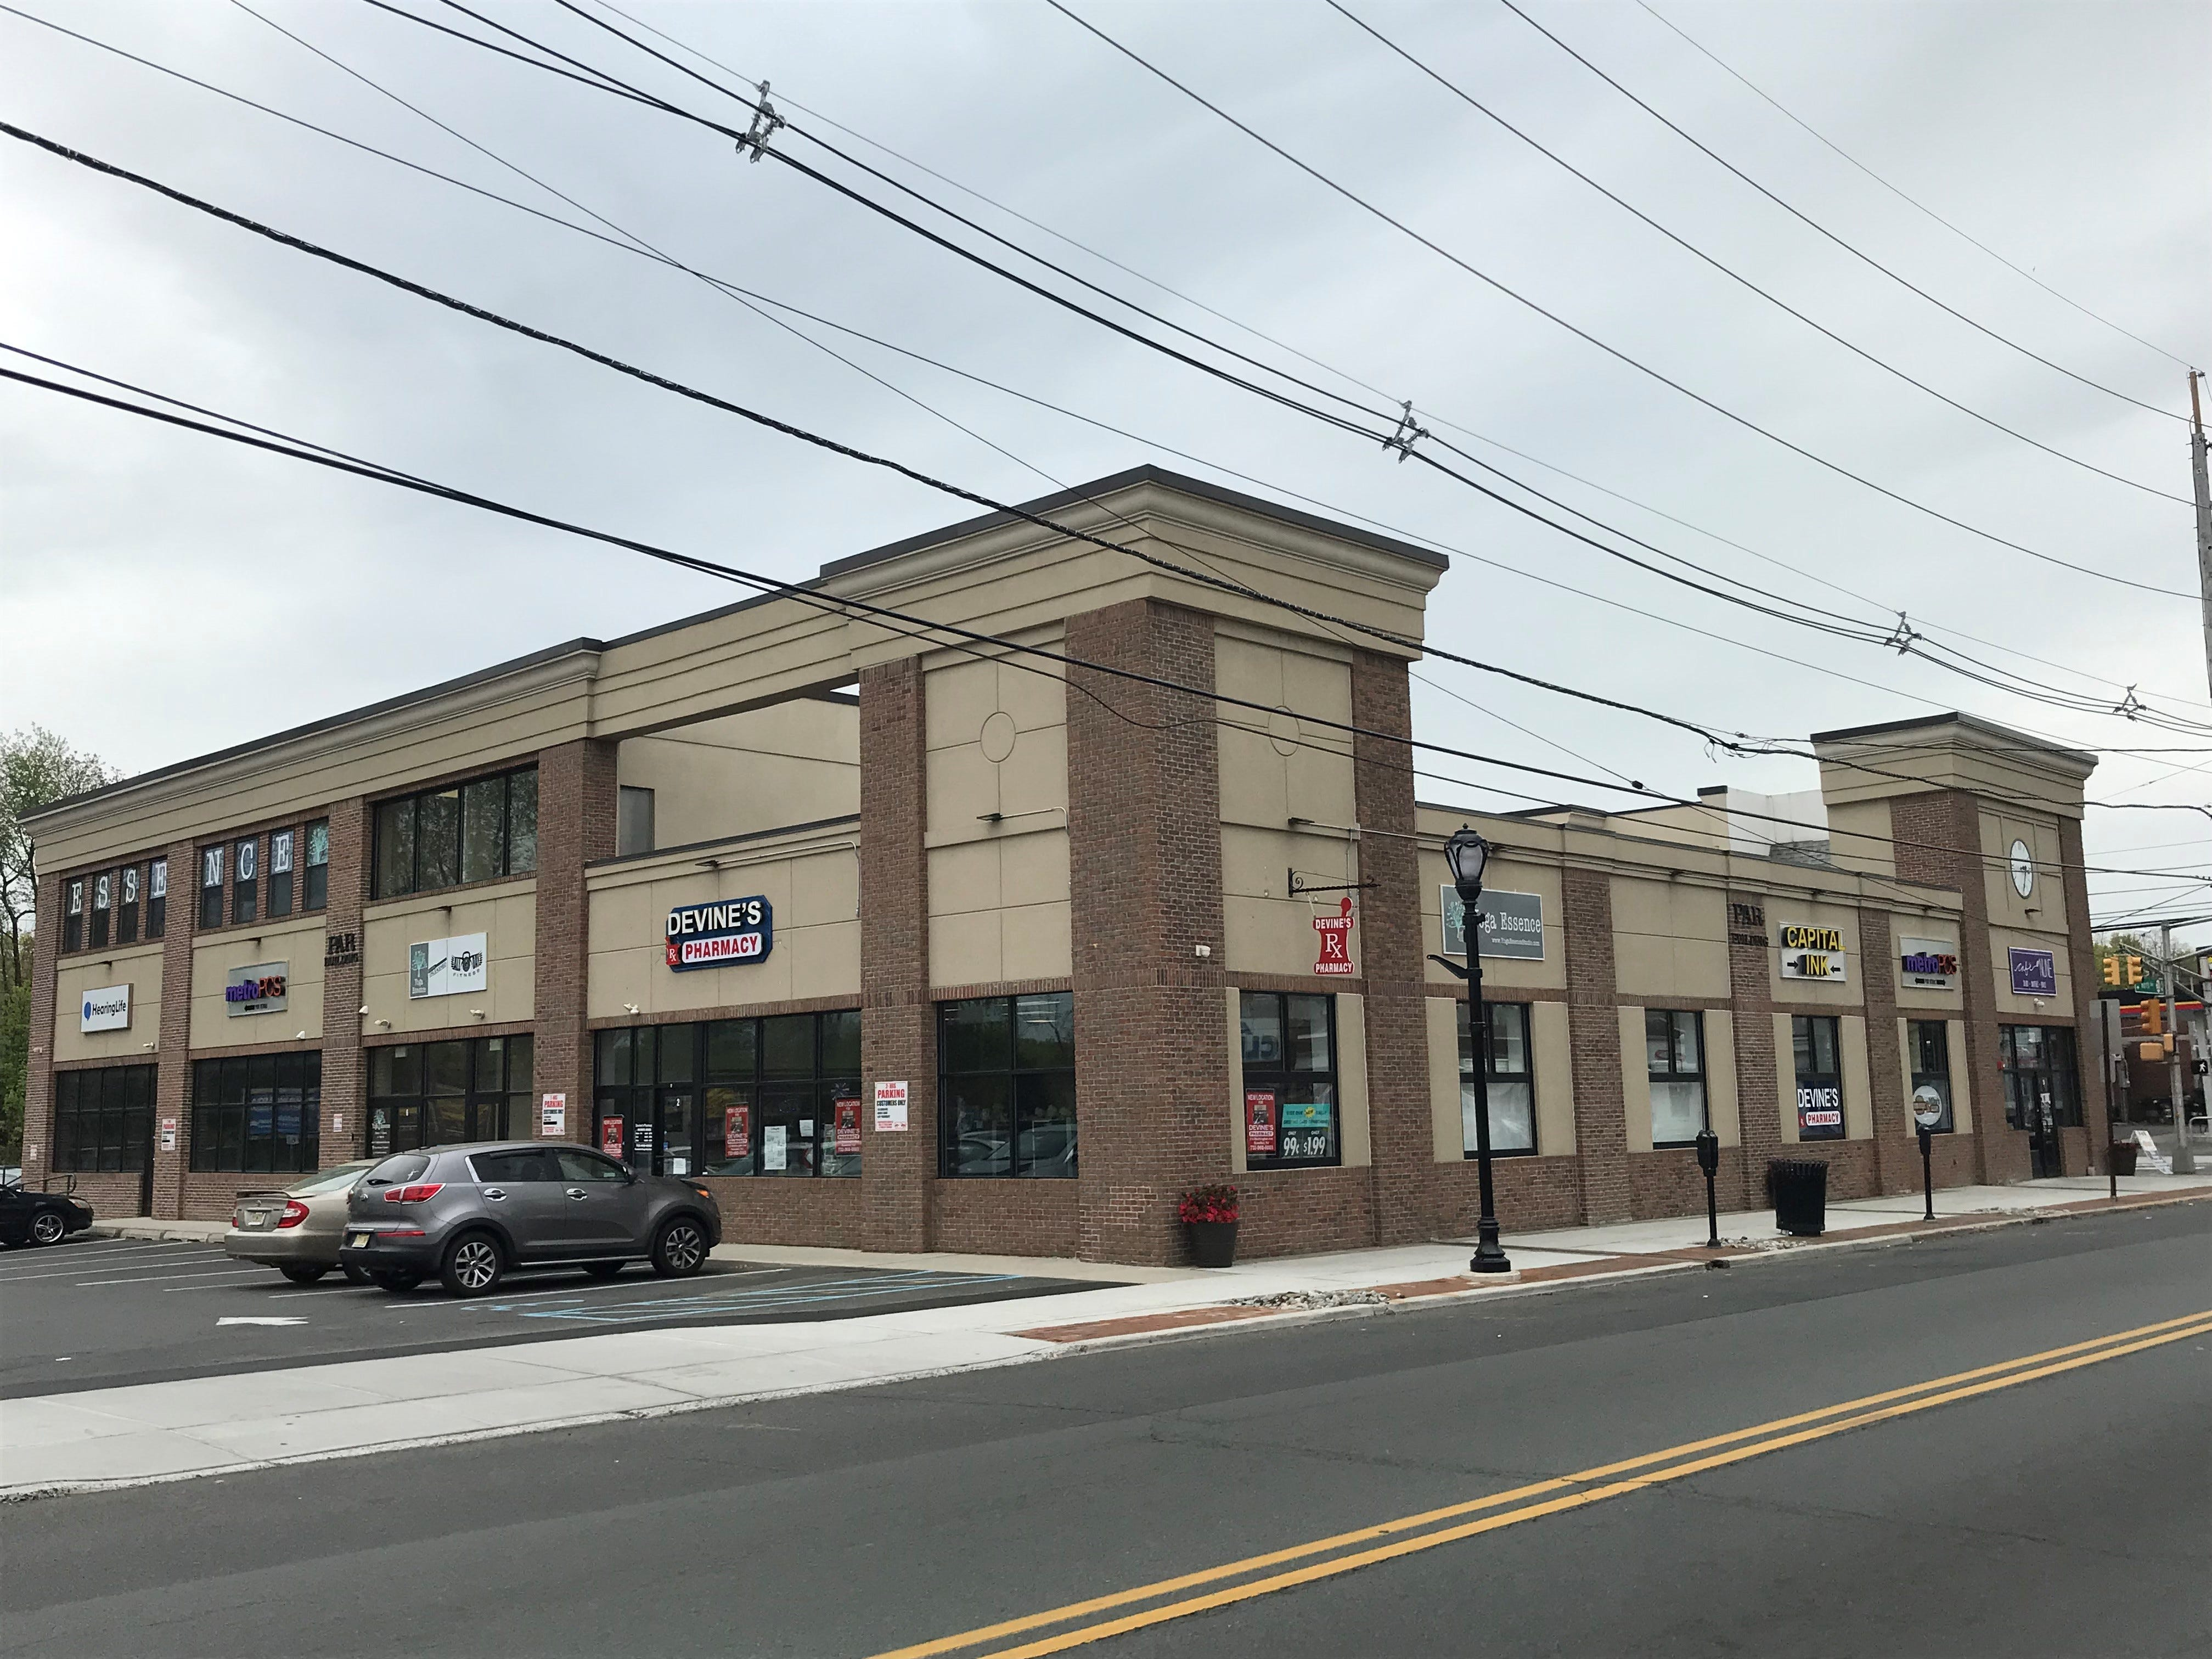 A look at Dunellen's recently redeveloped and named PAR Building, which will be dedicated to its original owner, Peter A. Riccio, on June 2 with a free community event.